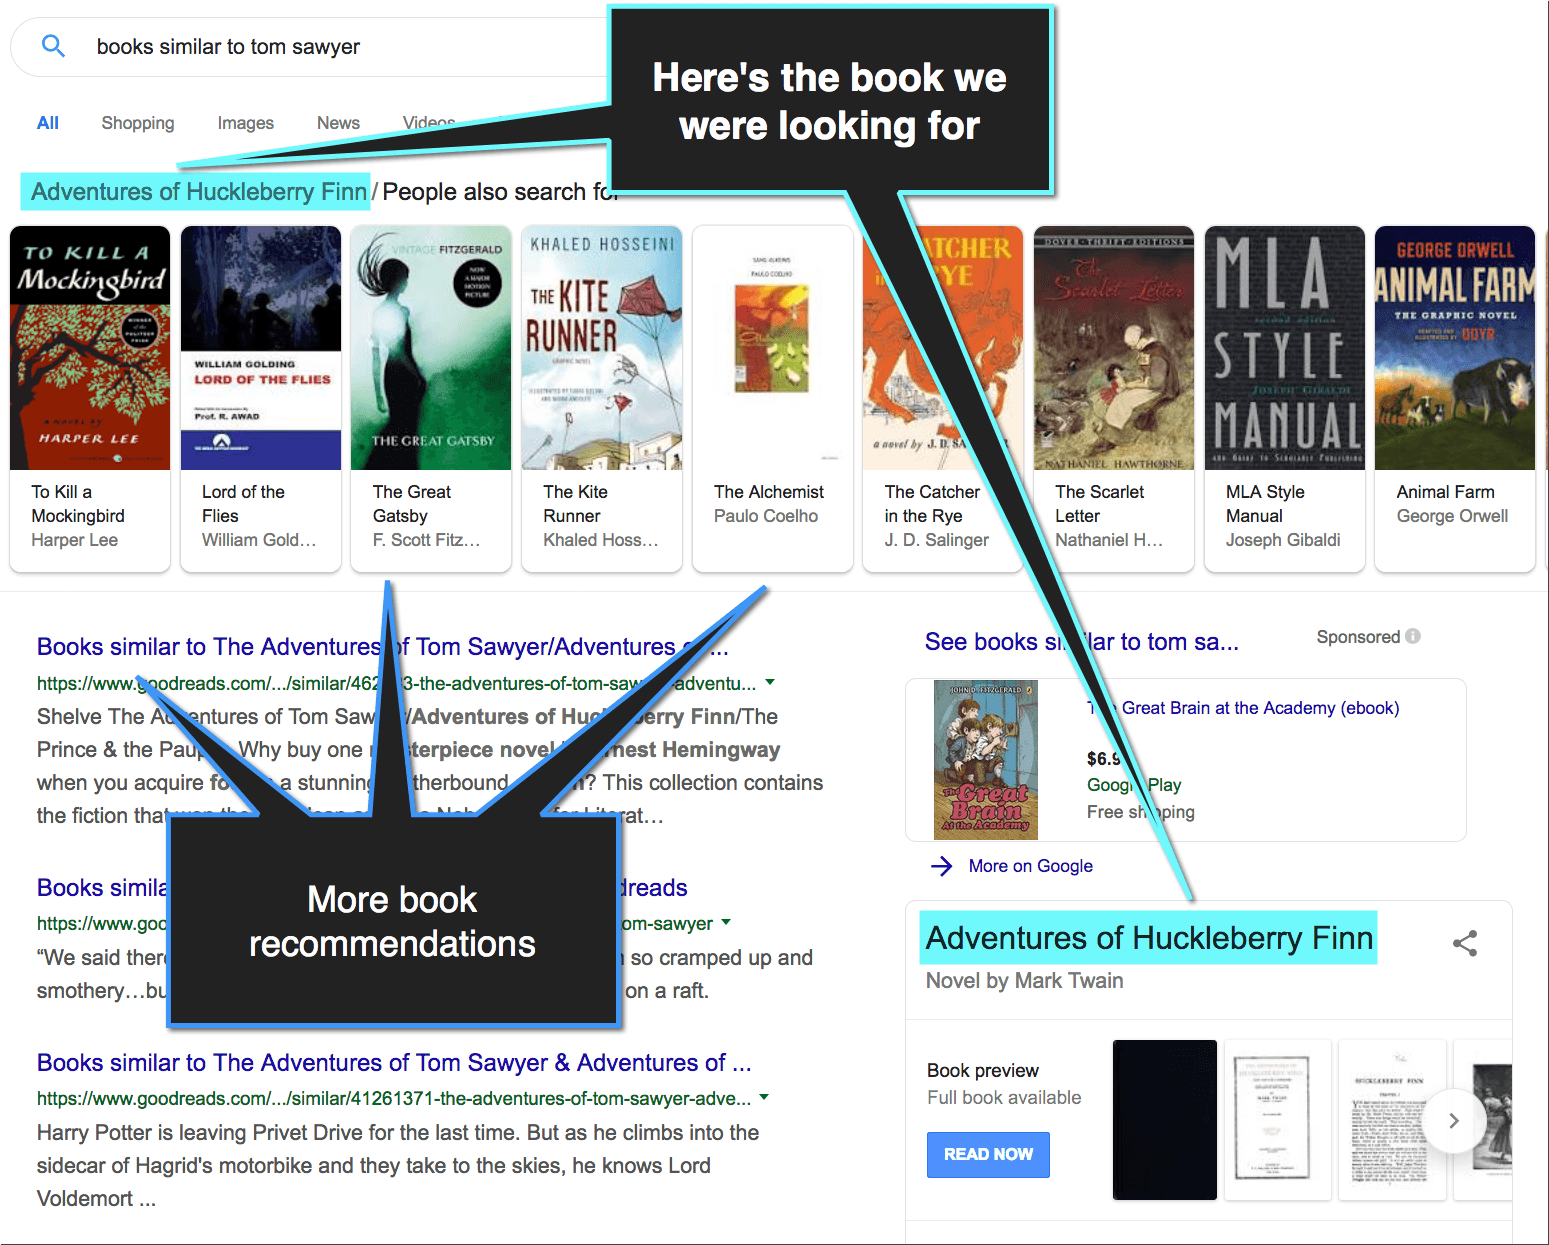 How to Find a Book When You Don't Know the Title or the Author (in Google)